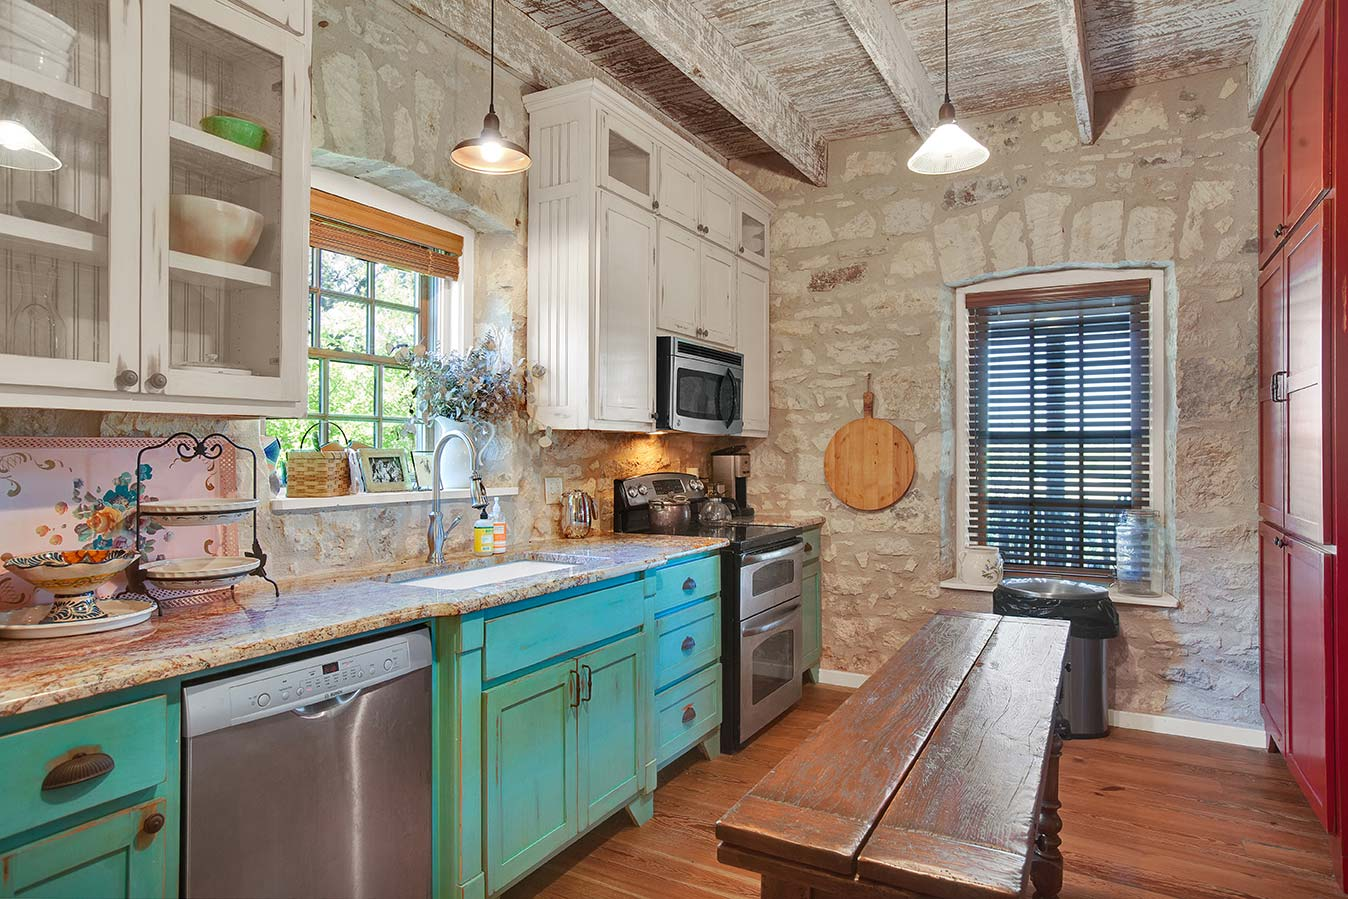 fredericksburg-realty-squaw-creek-ranch-real-estate-land-for-sale-home-house-historic-16.jpg